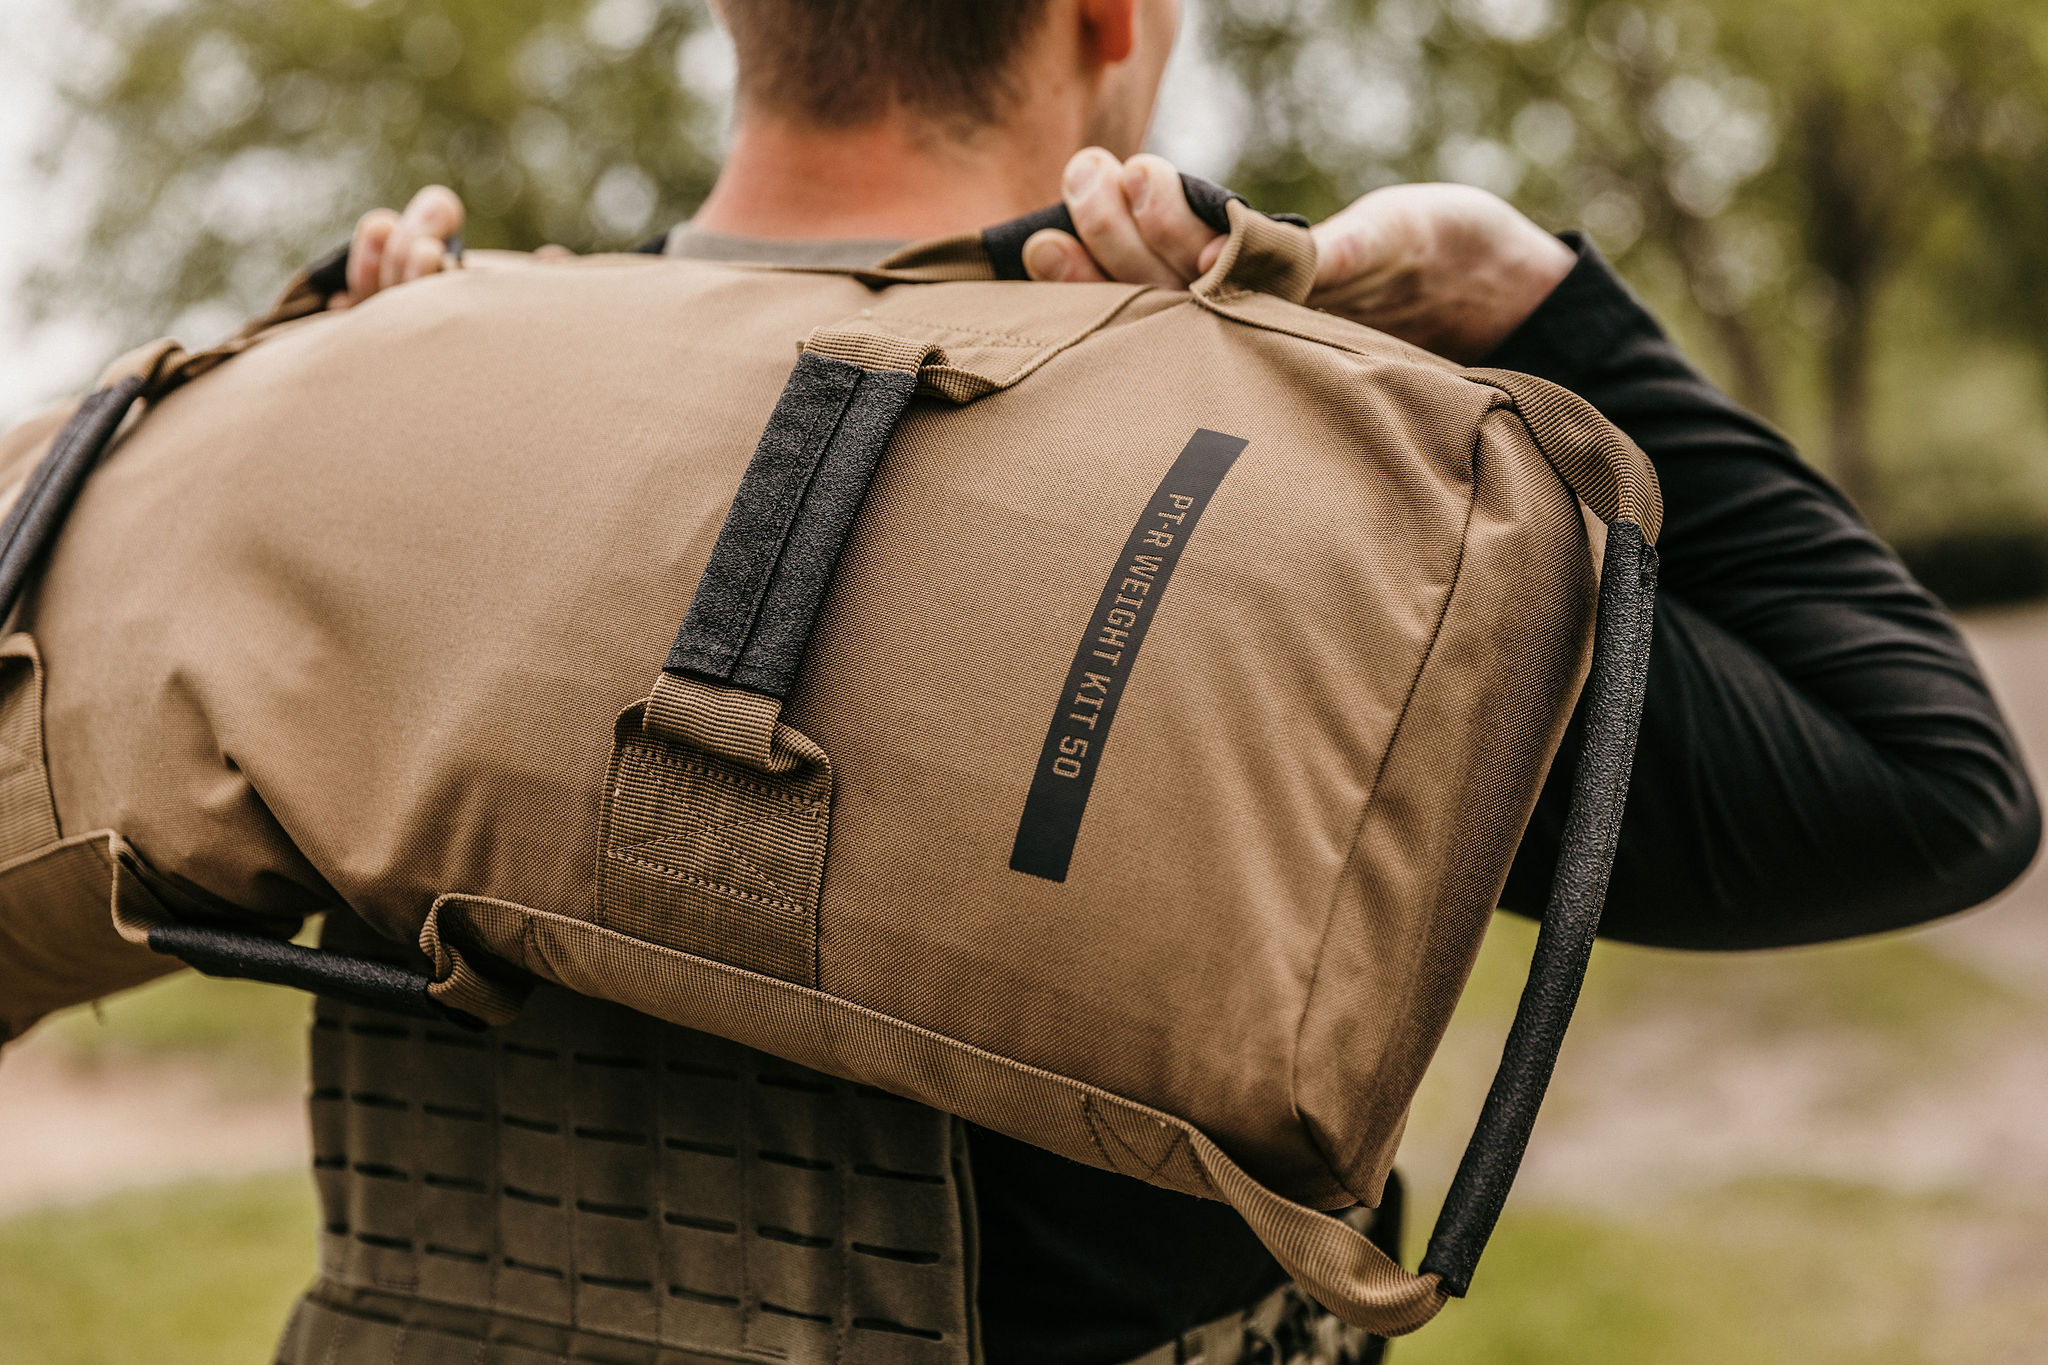 AO Review: 5.11 Tactical PT-R Weight Kit 50 Lb – Physical Training-Ready